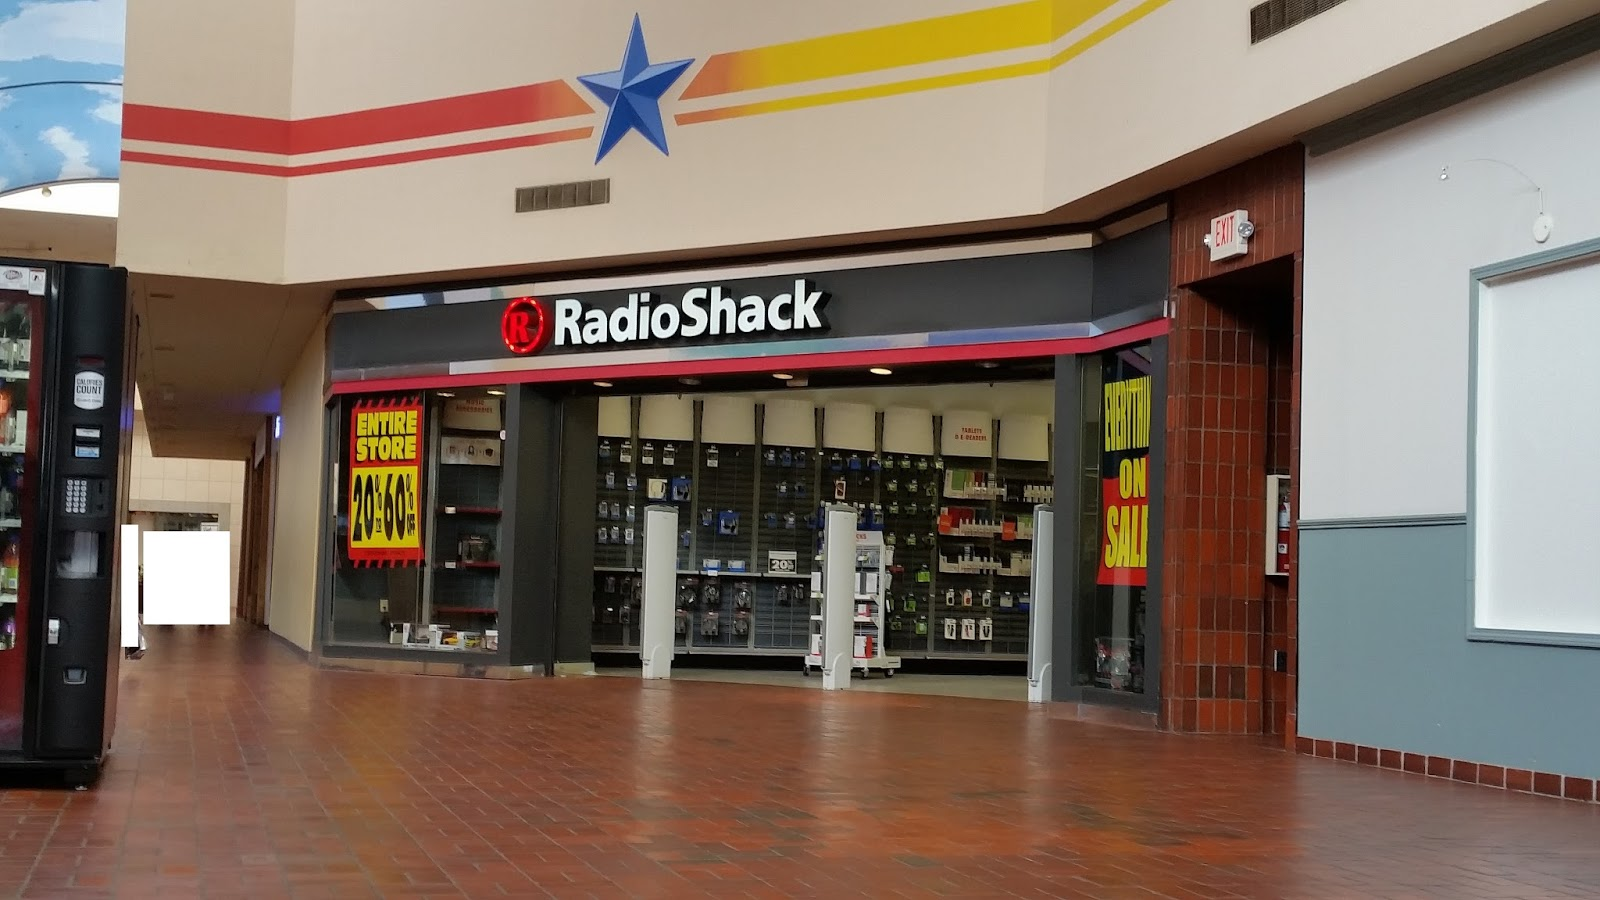 louisiana and texas southern malls and retail august 2015